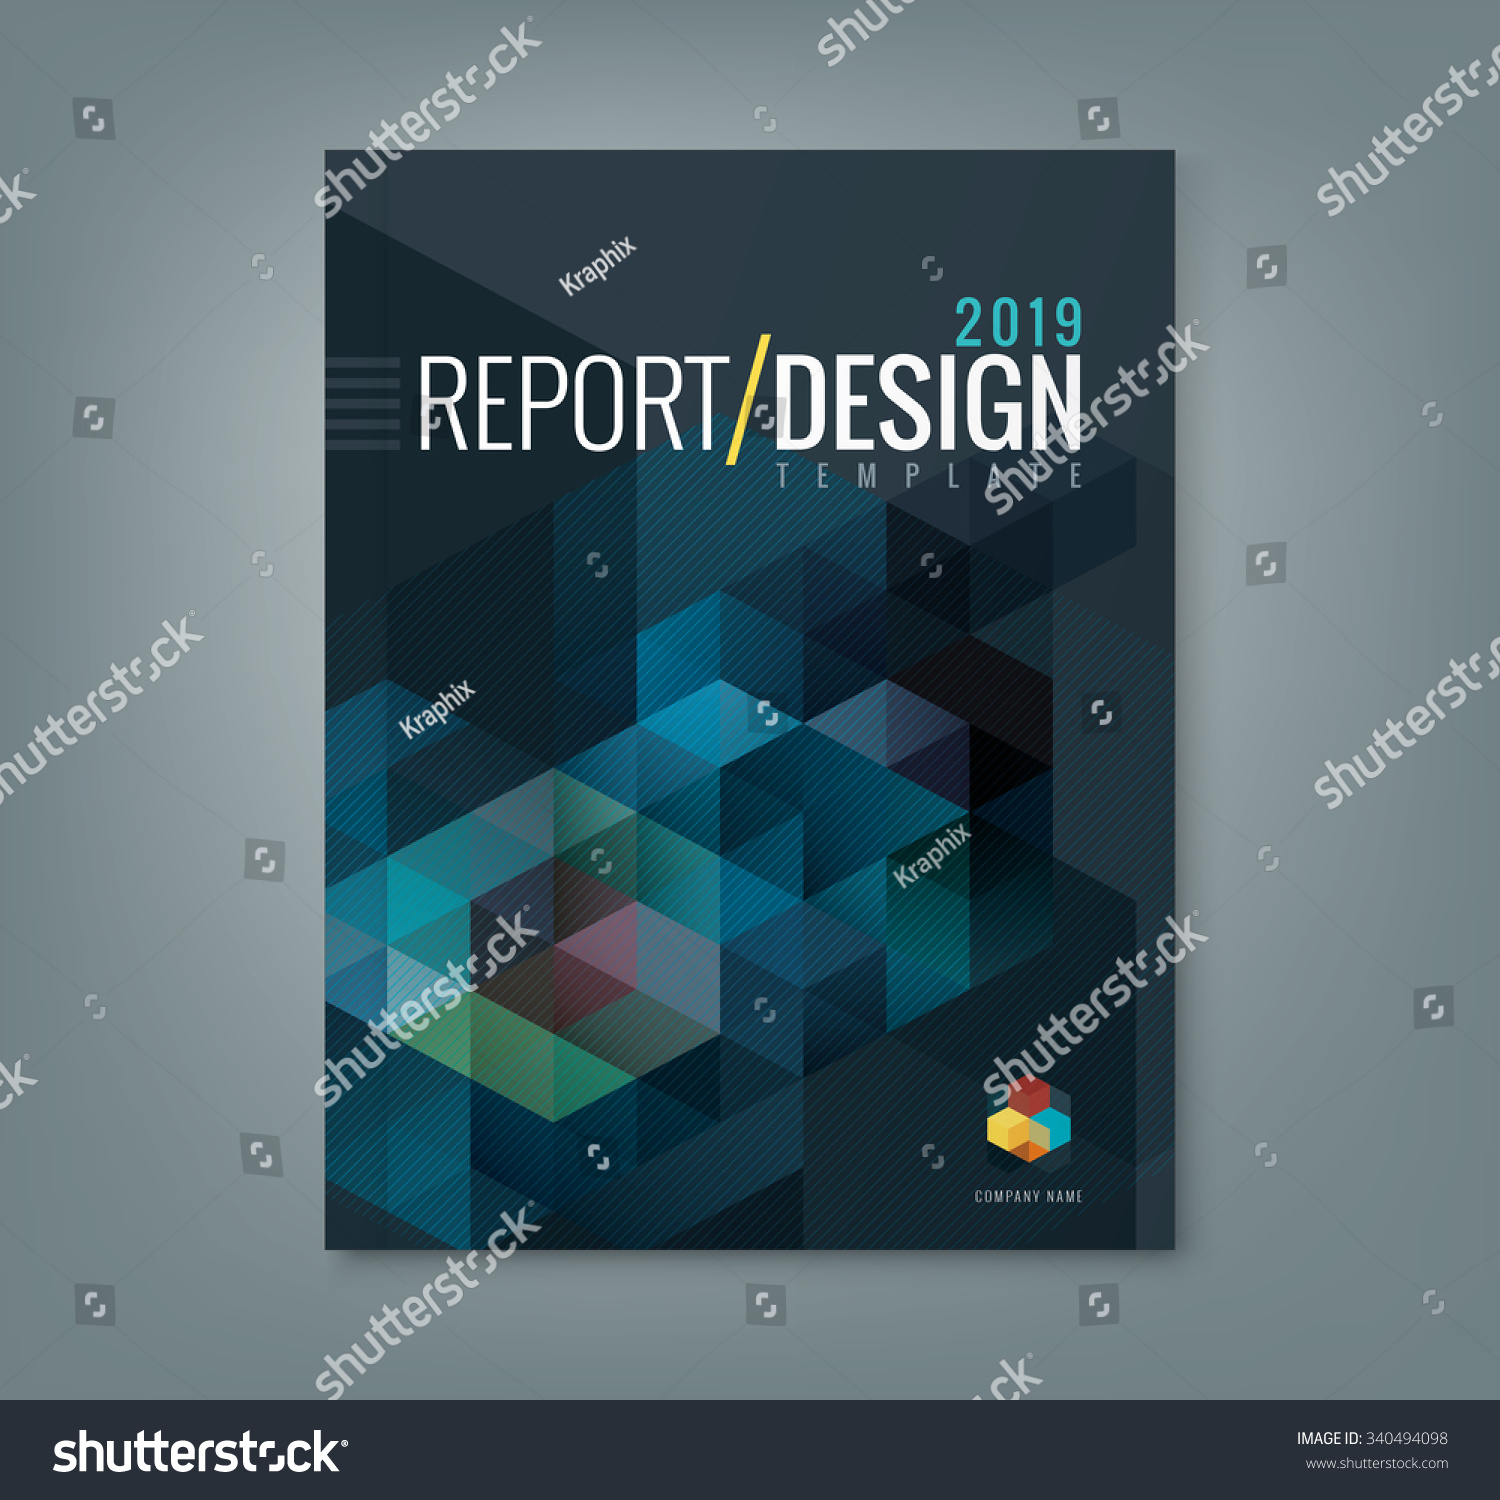 kingsoft powerpoint templates images - templates example free download, Powerpoint templates